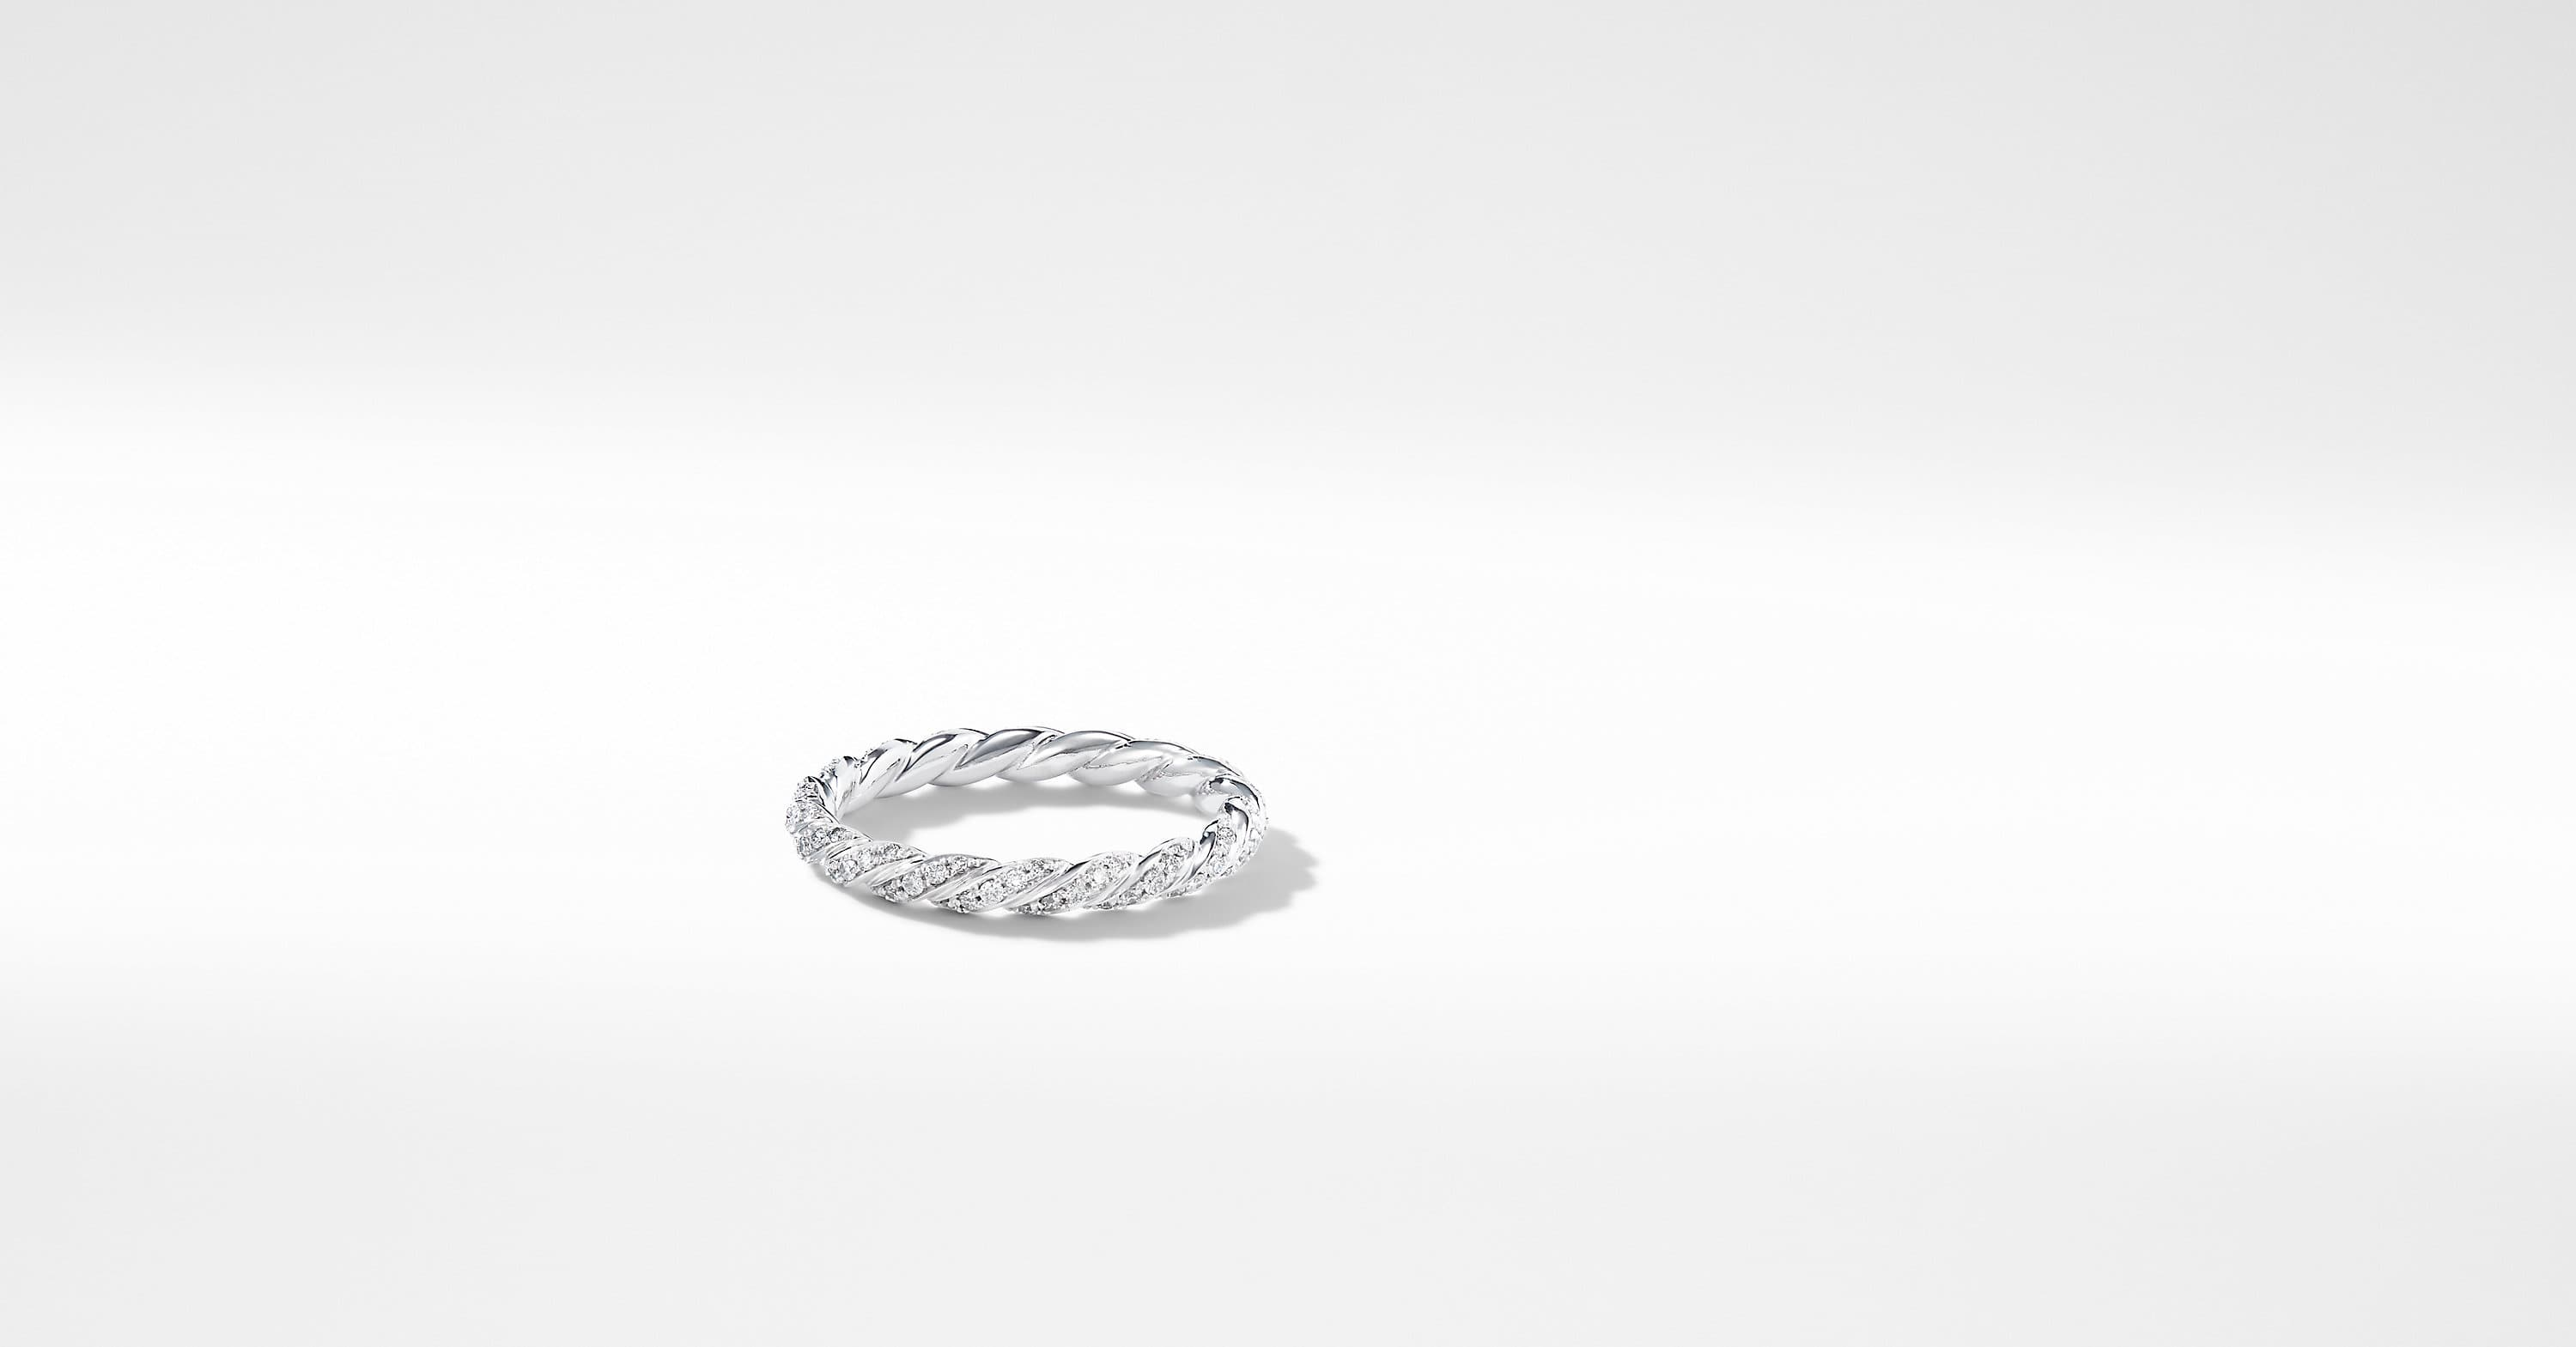 Paveflex Ring with Diamonds in 18K White Gold